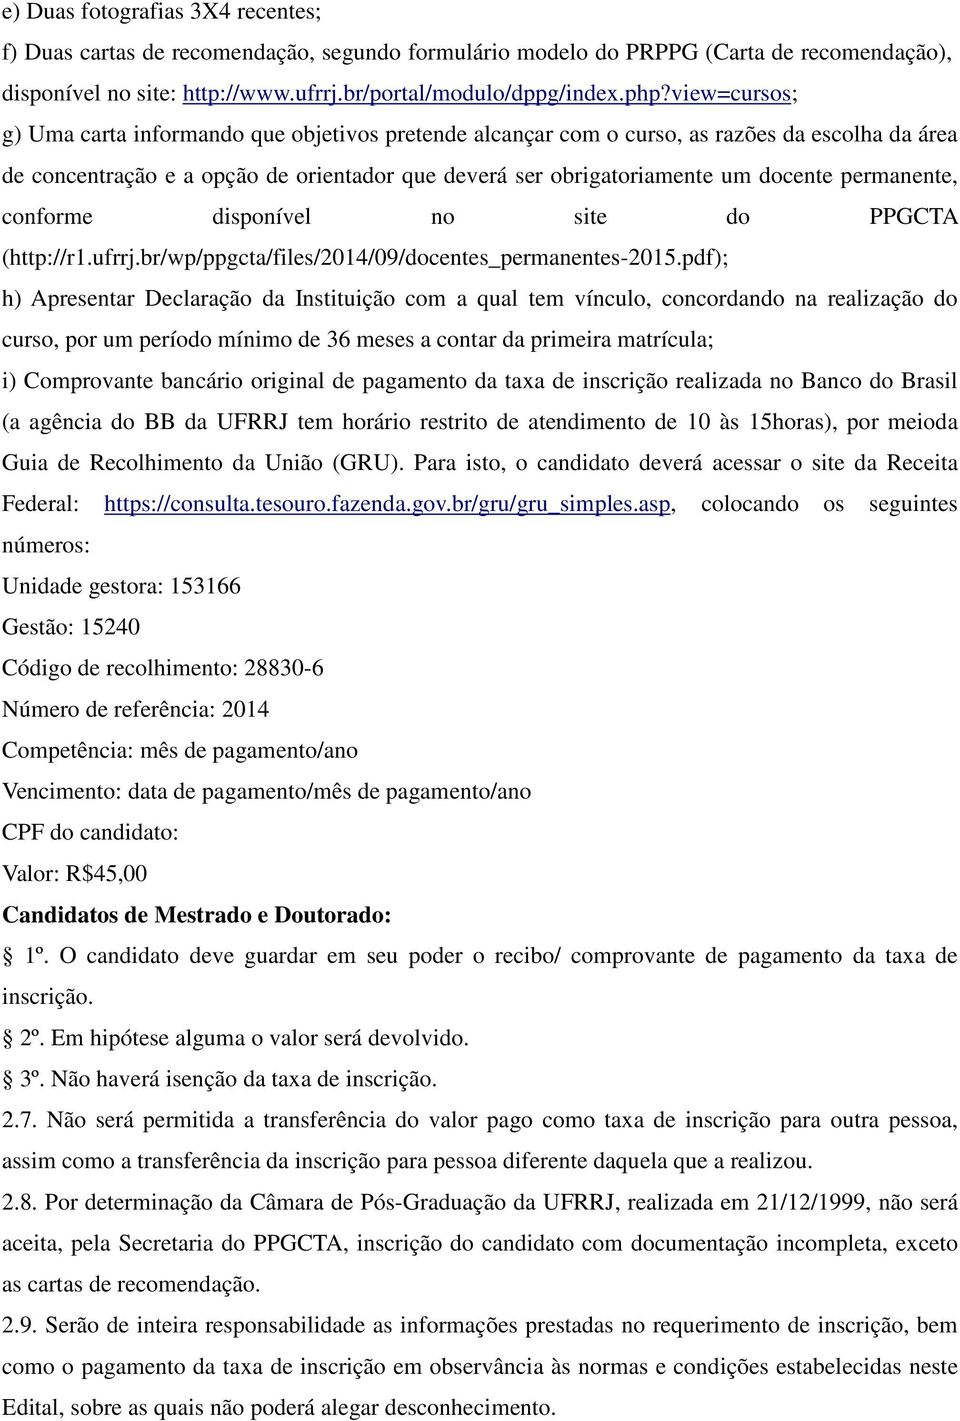 permanente, conforme disponível no site do PPGCTA (http://r1.ufrrj.br/wp/ppgcta/files/2014/09/docentes_permanentes-2015.